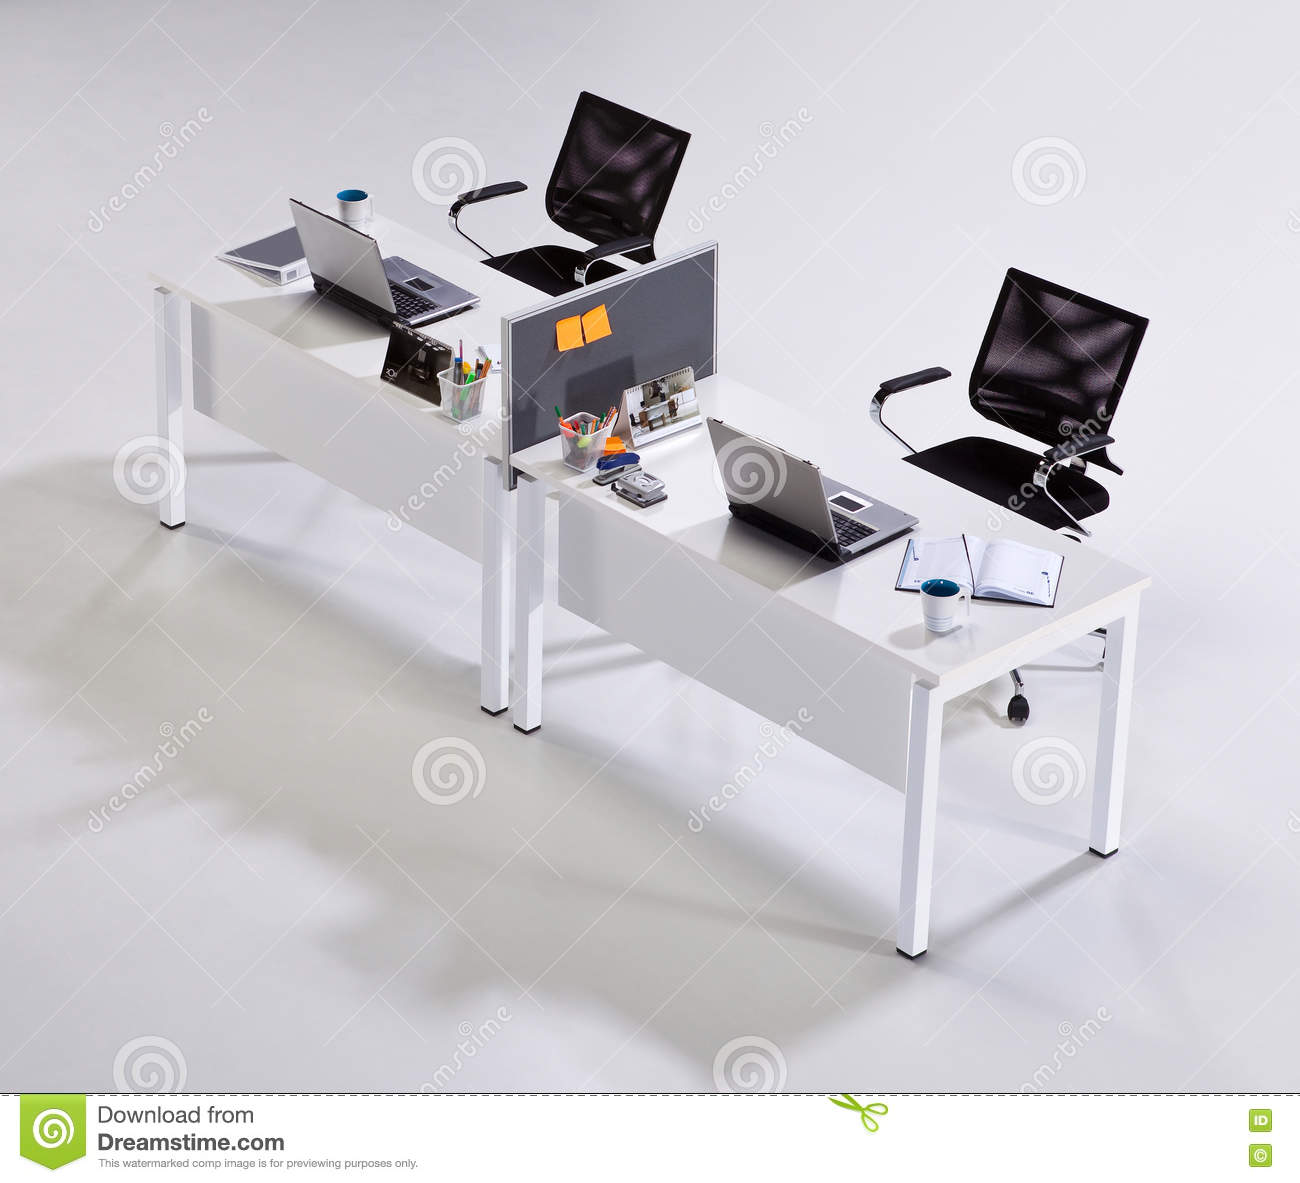 Office Furniture On A White Background